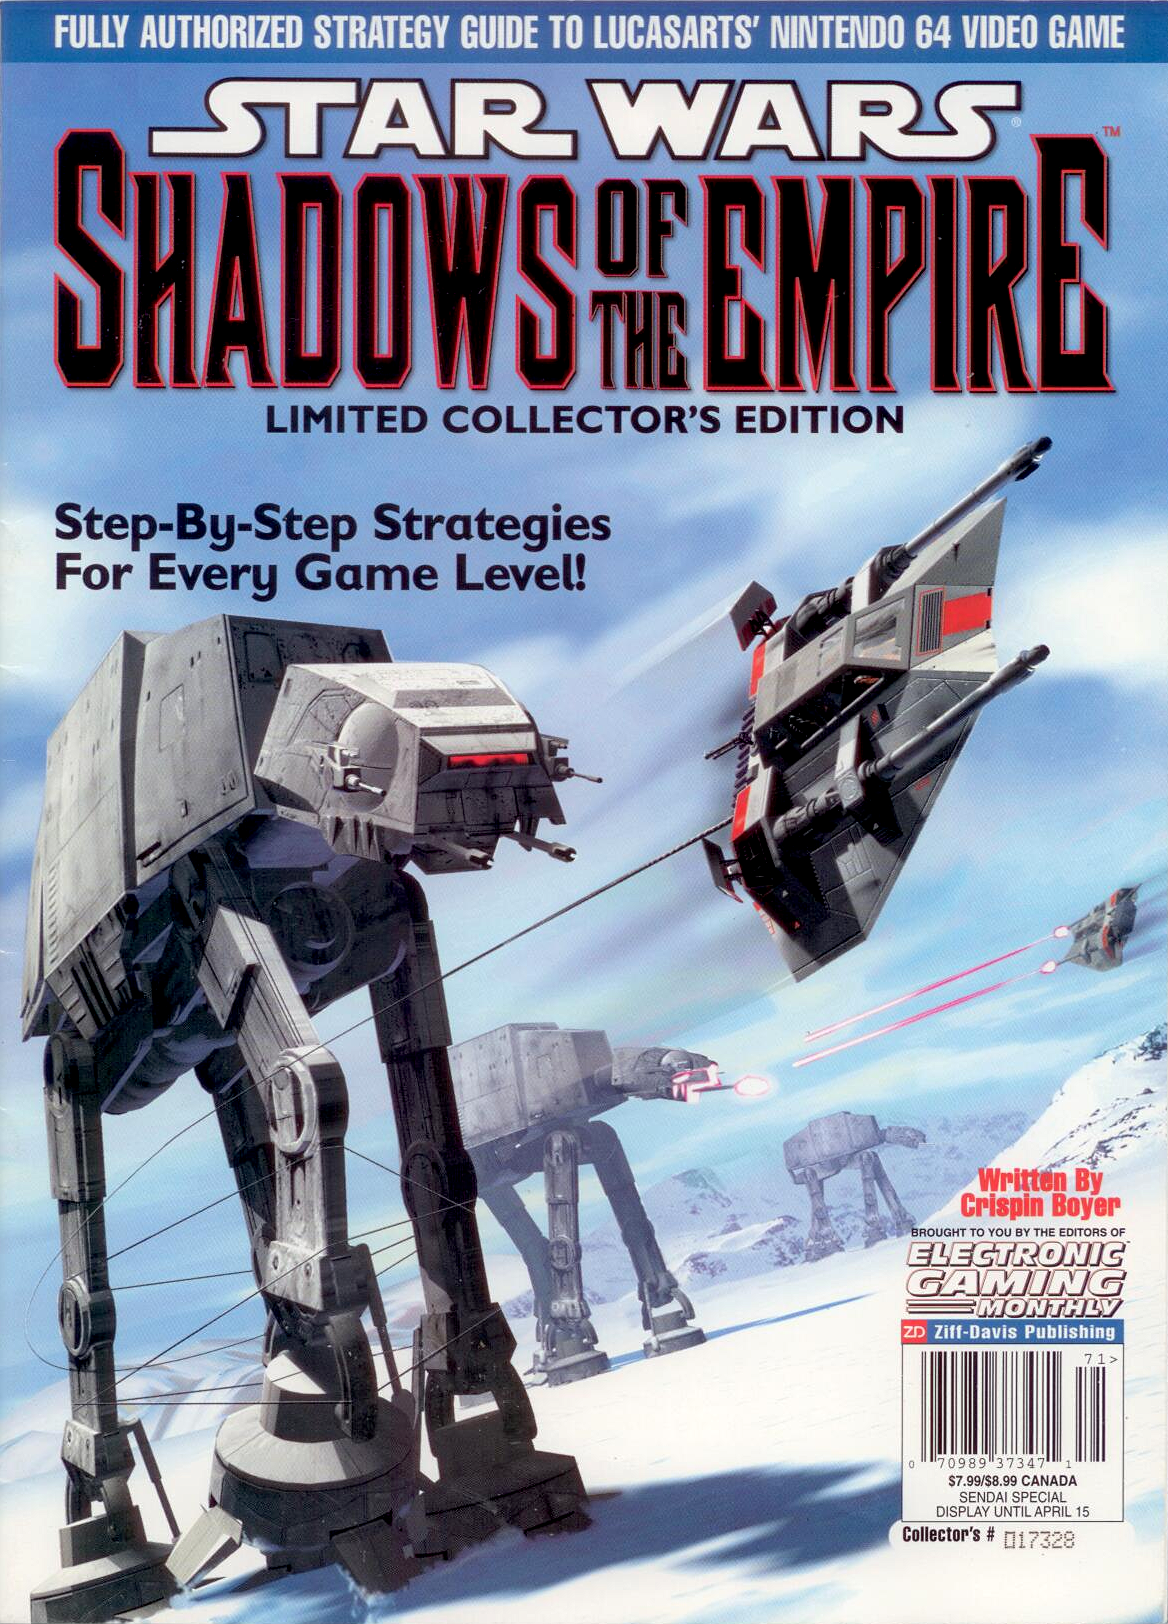 Star Wars: Shadows of the Empire Limited Collector's Edition